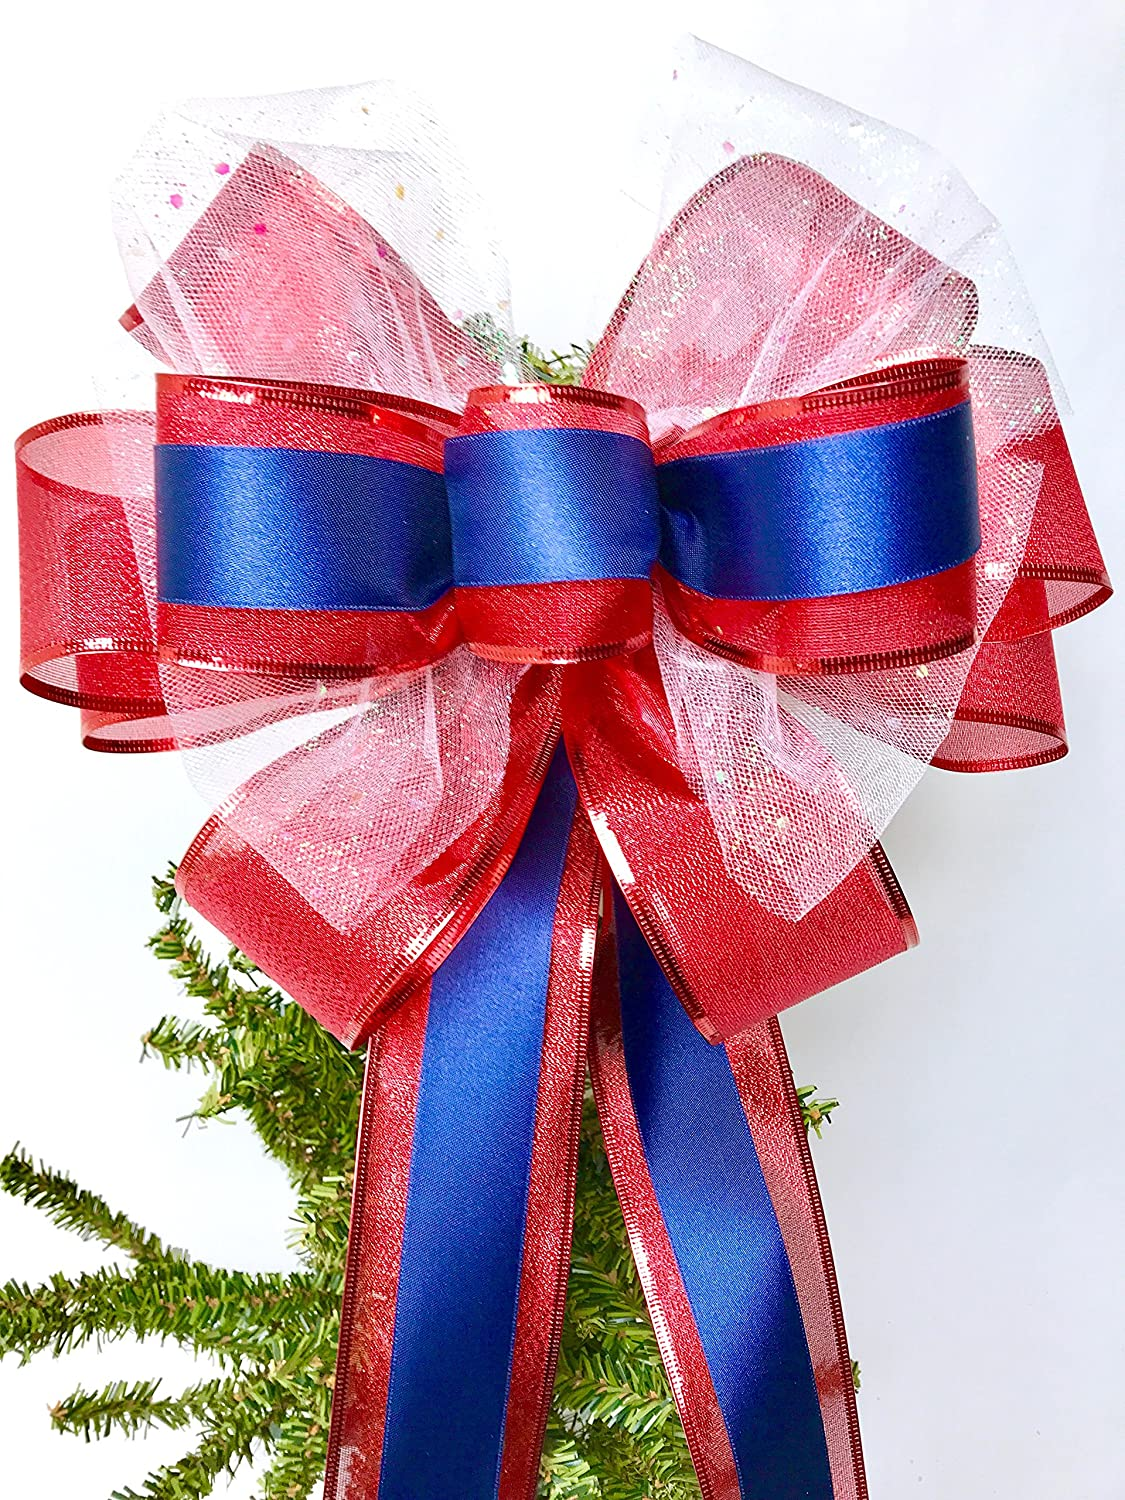 Wreath Bow, Red White Blue Handmade Large Gift Bow, Office Decorating, Wreath Bows, Holiday Bow, Home Decor, Swag Bow, Door Decor - Handmade Bow